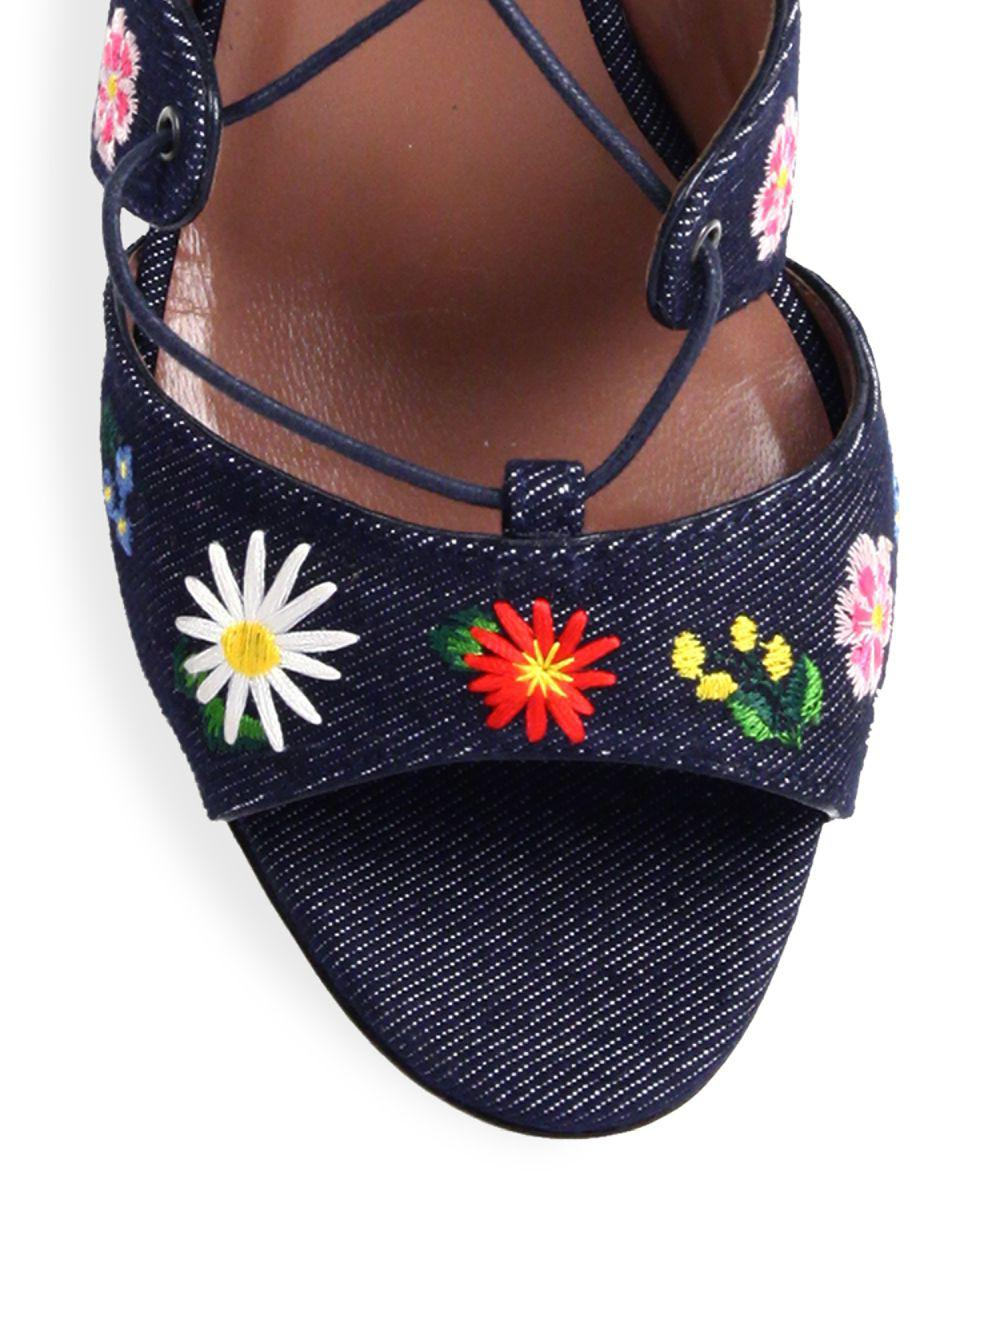 bfadae4e0a89 Tabitha Simmons - Blue Isadora Flower-embroidered Denim Lace-up Sandals -  Lyst. View fullscreen